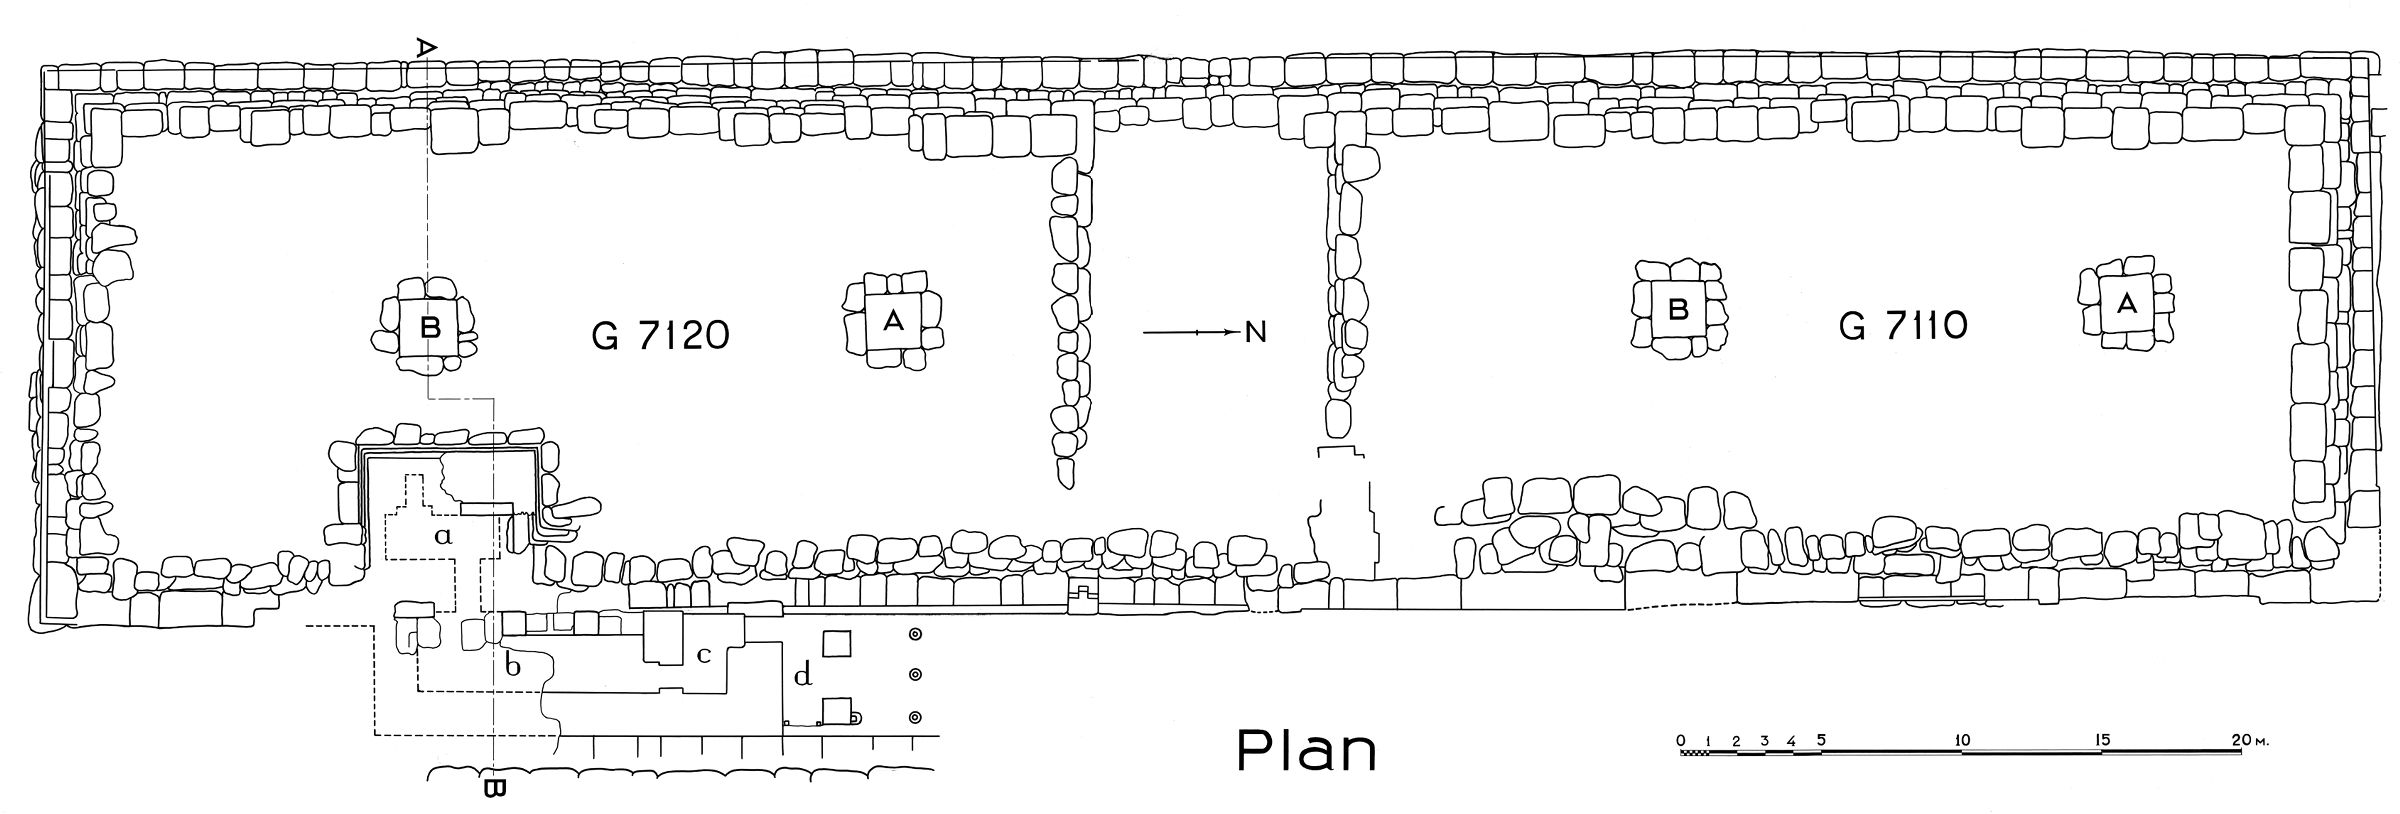 Maps and plans: Plan of G 7110-7120